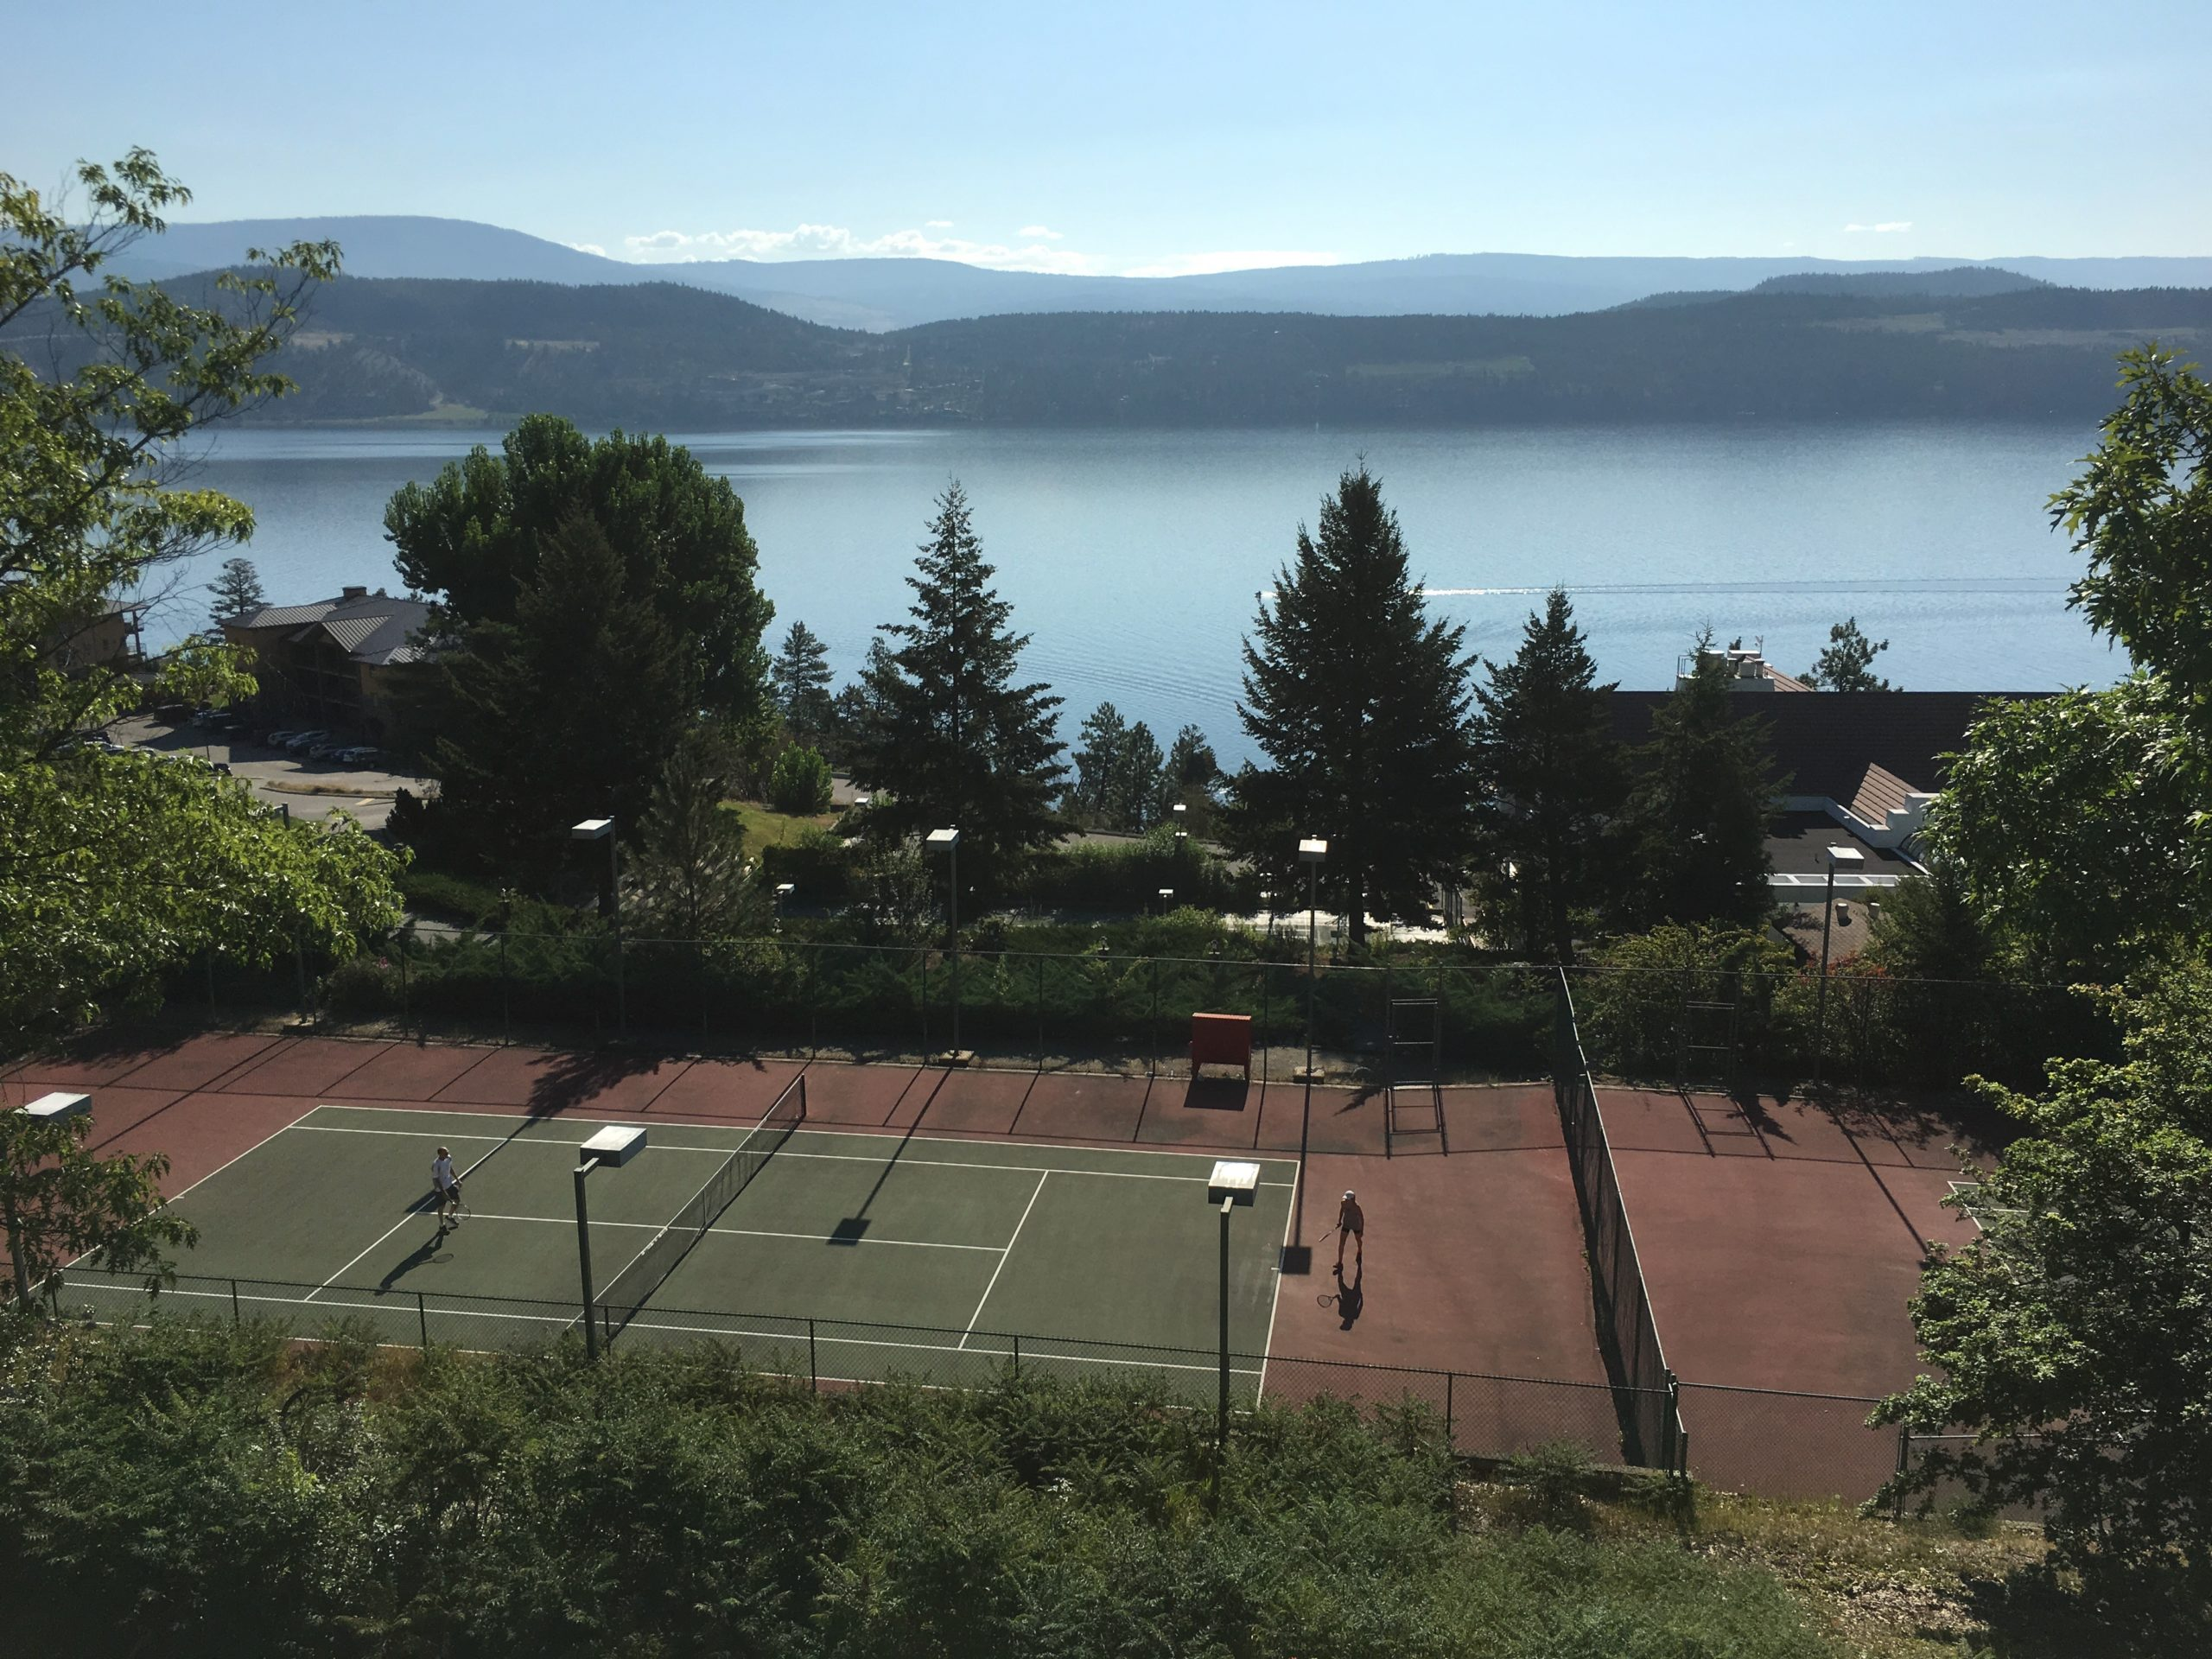 Playing Tennis On The Tennis Court Located At Okanagan Beach Club